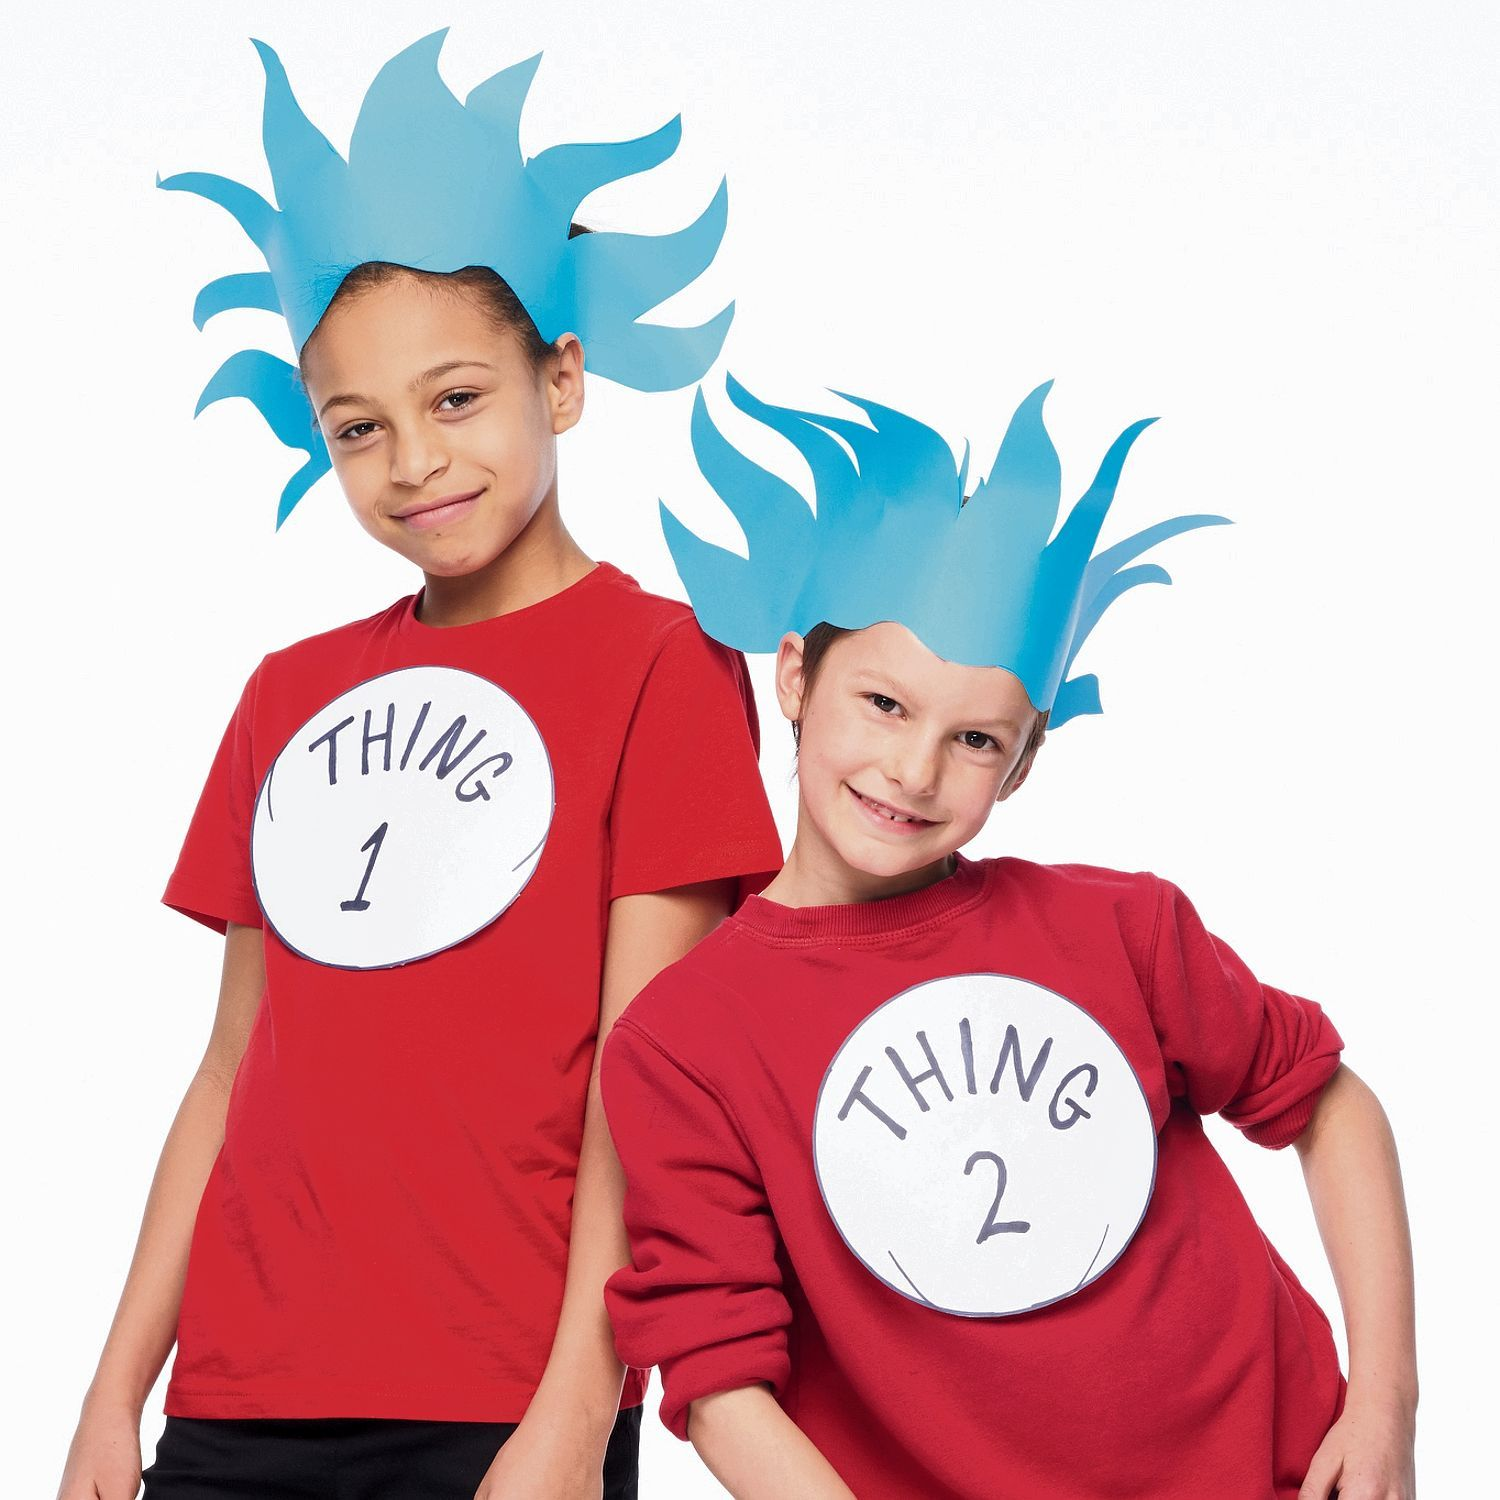 Excellent Booking Good Six Easy To Make Outfits Thing Book Free Download Thing World Book Day Thing Thing Thing 1 Costume Girl Thing 1 Costume Baby baby Thing 1 Costume